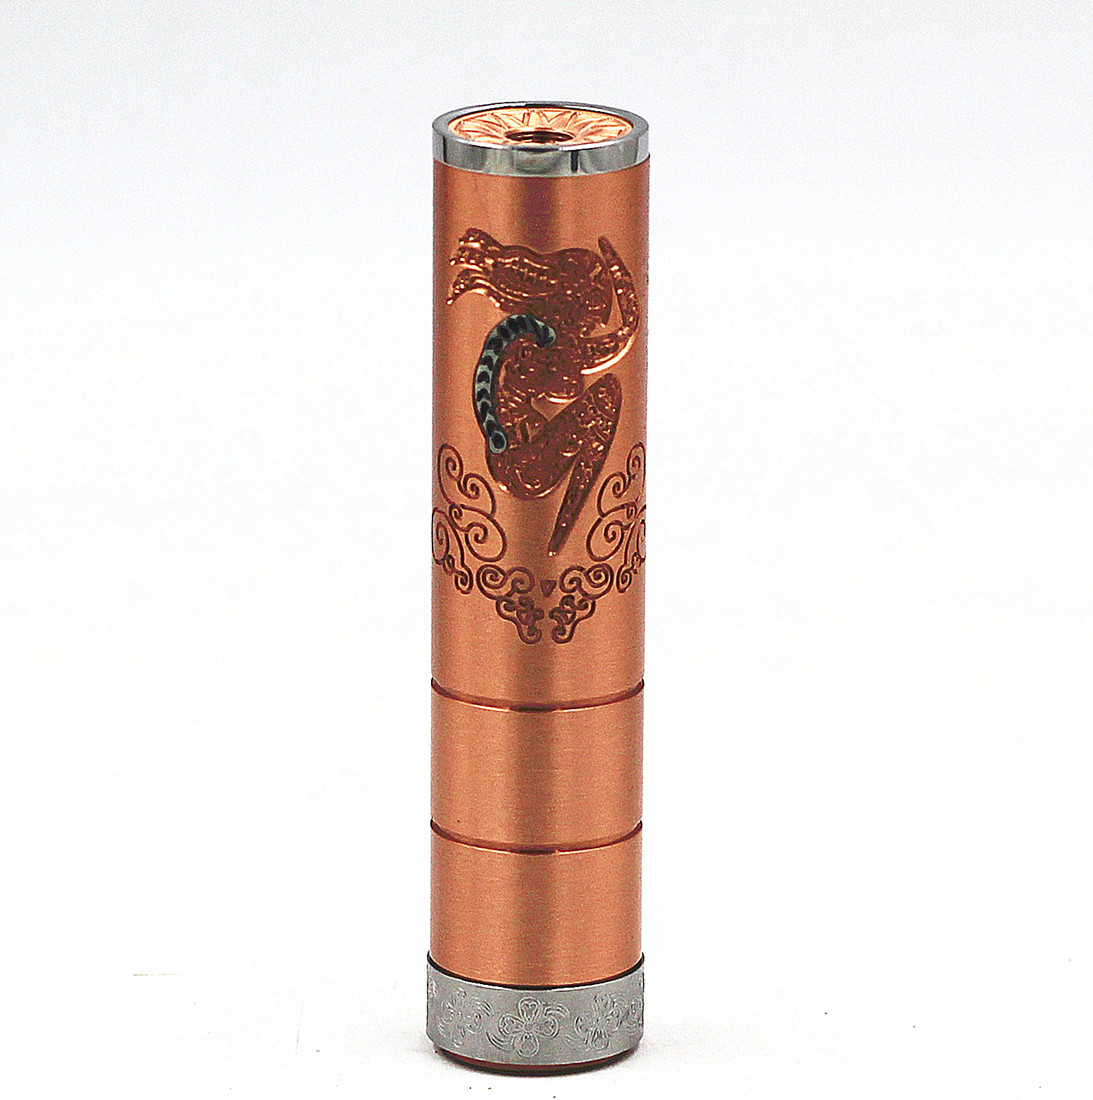 Emma Mech Mod Mechanical 18650 Battery Body Vaporizer Vapor Vape Mod For RDA RBA